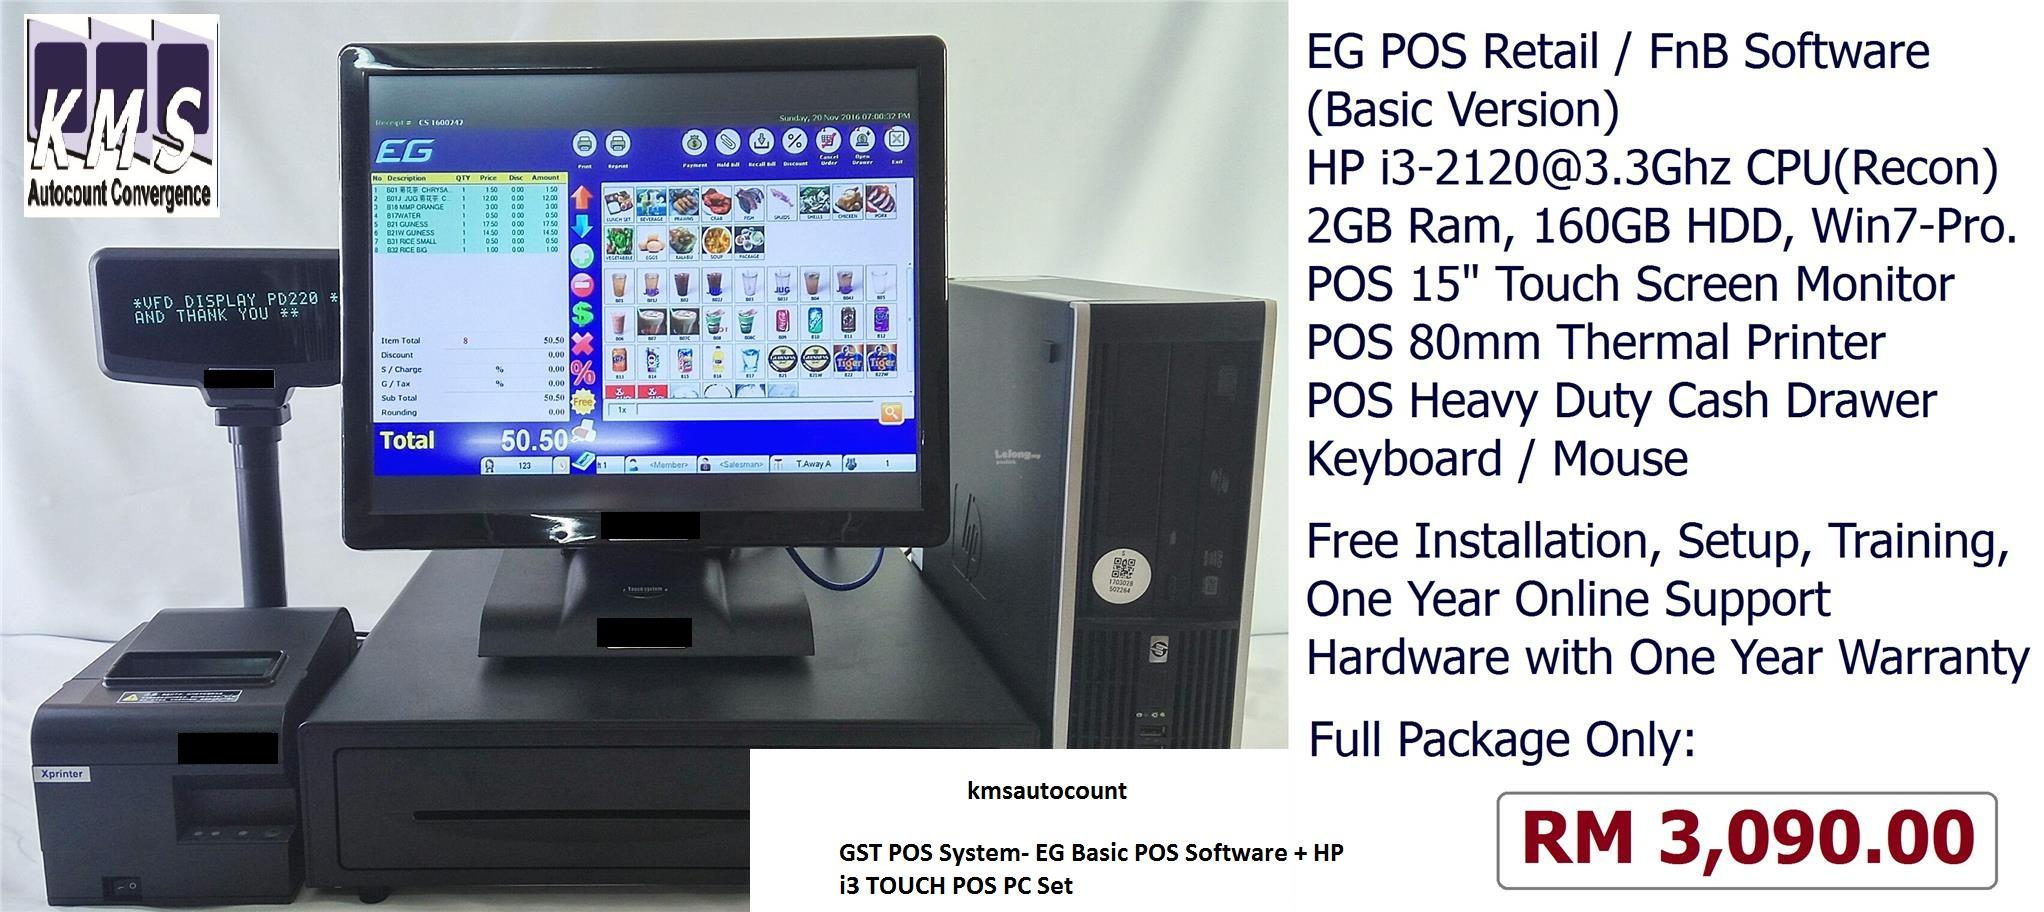 Gst Pos System Hp C2d Pos Economic End 2 27 2019 5 15 Pm